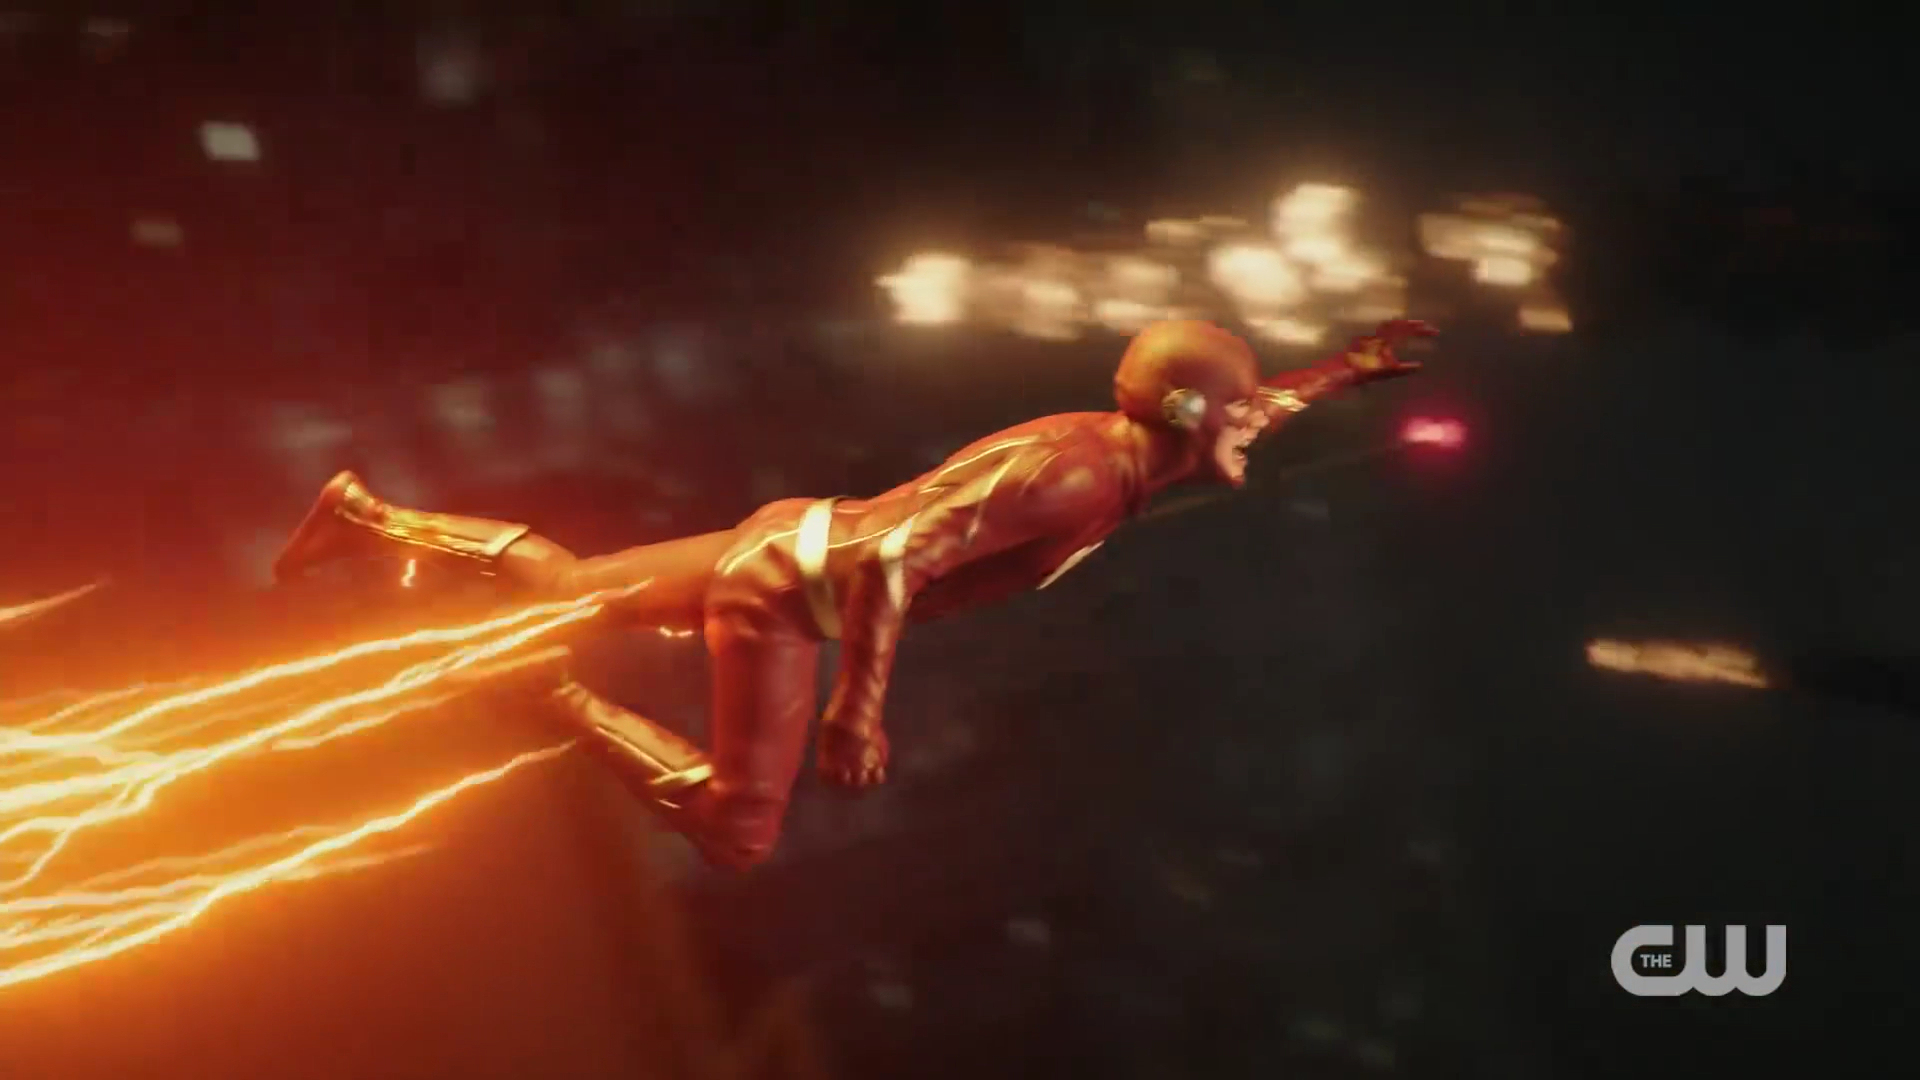 The Flash movie free download in italian